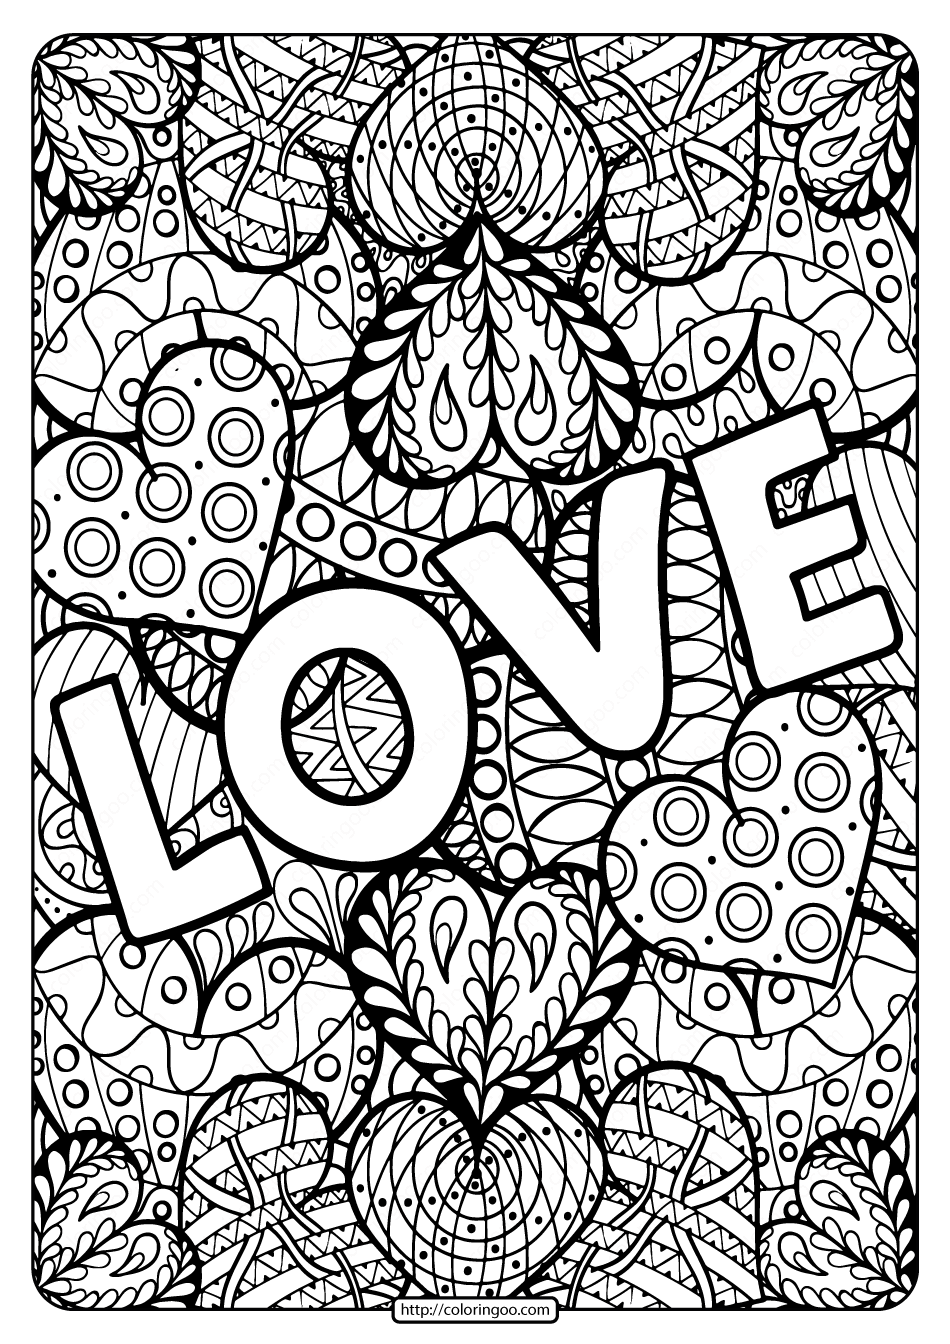 coloring love free printable love coloring pages for kids love coloring